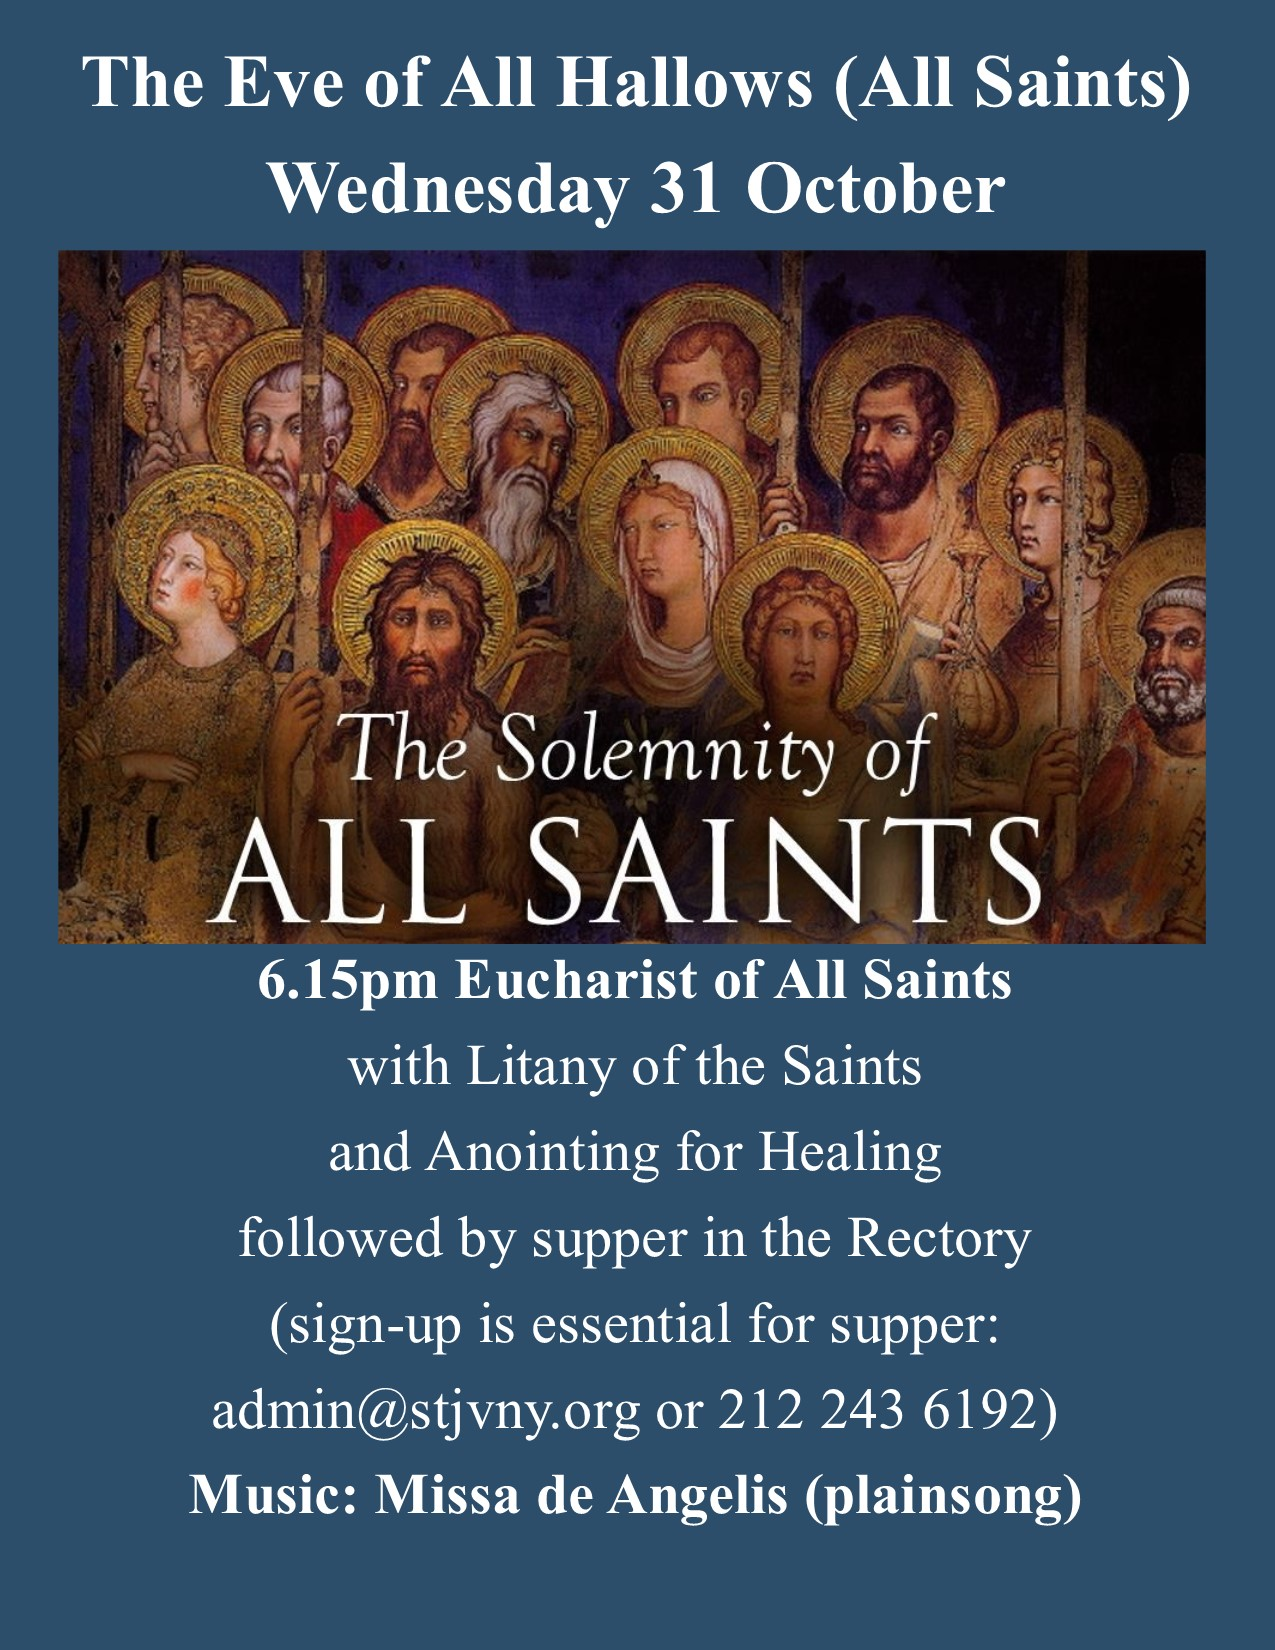 All Saints saints.jpg